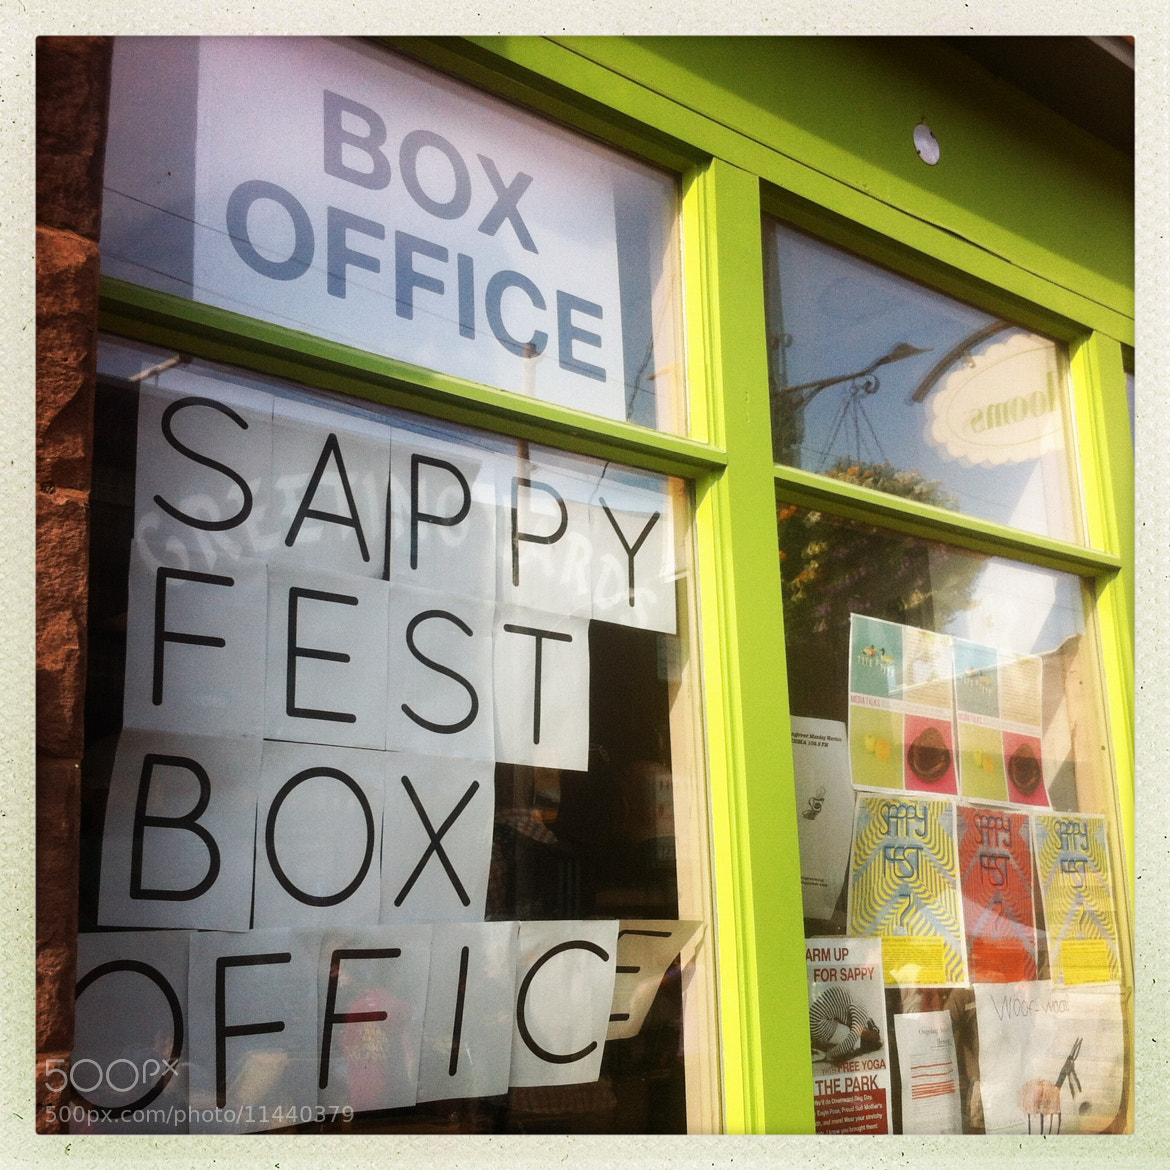 Photograph Sappyfest 7 Box Office by Chris Campbell on 500px